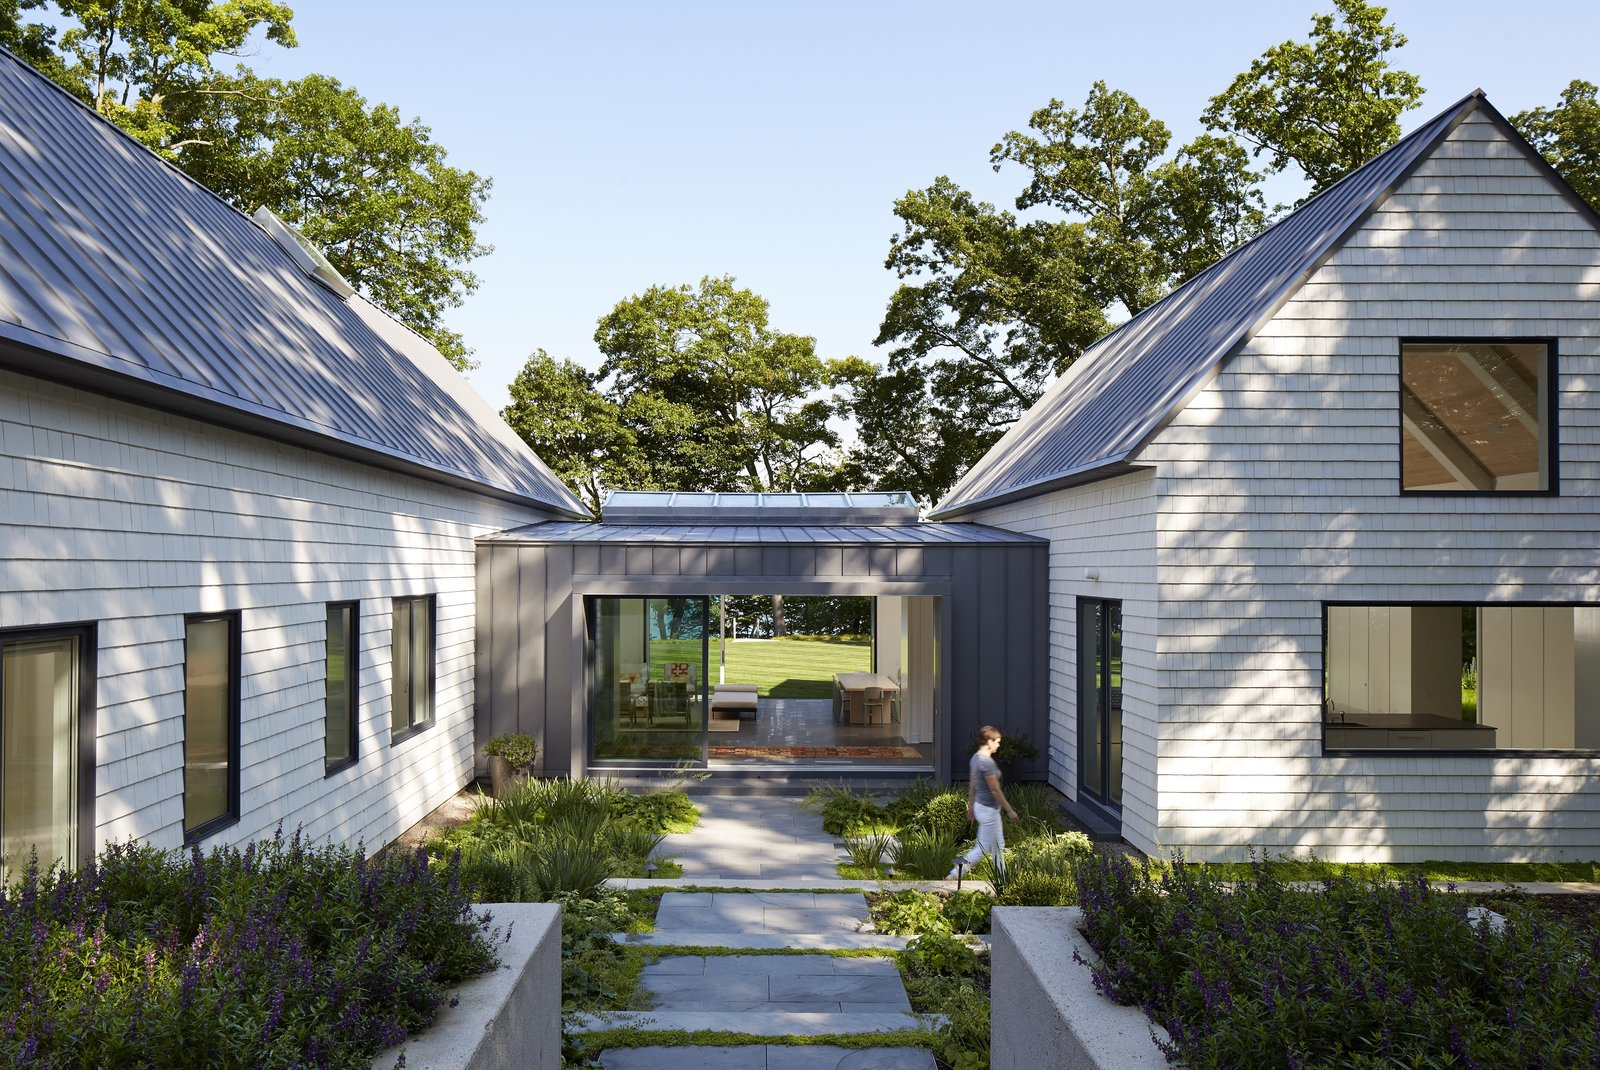 Photo 1 of 7 in Cabins and Connectors Form a Family's Lake Michigan Retreat